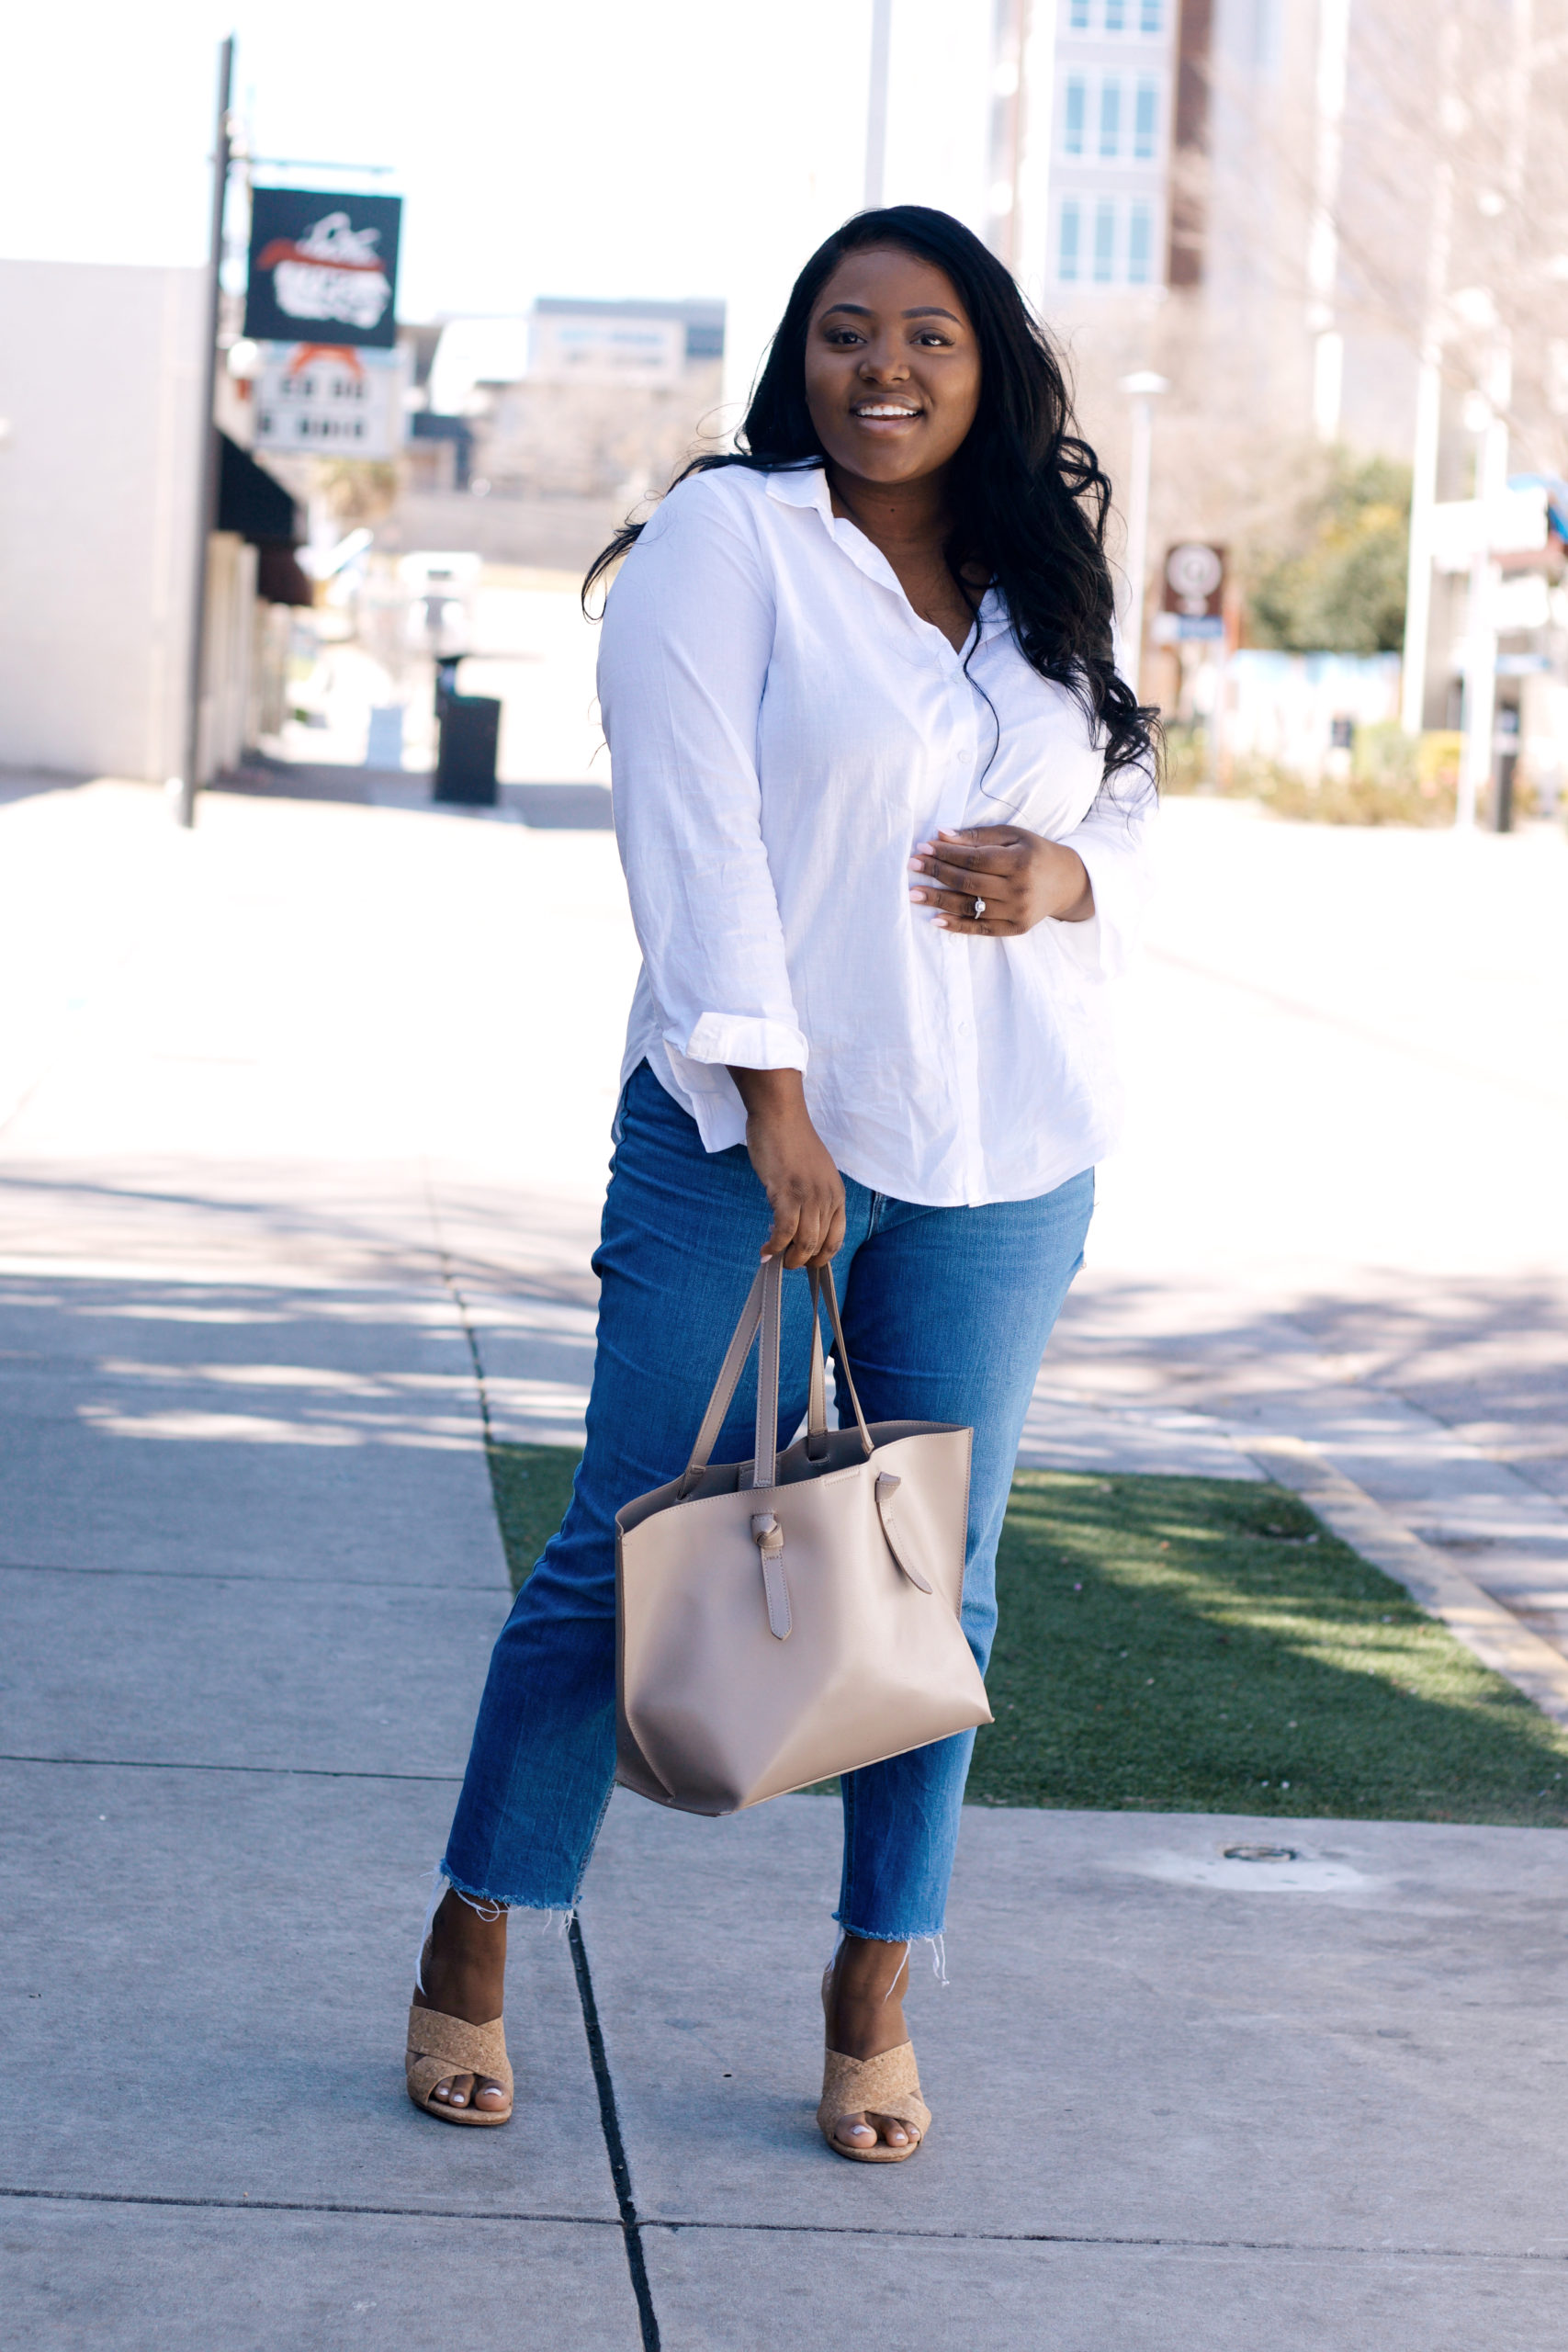 go-to Spring outfit with white button downs and jeans